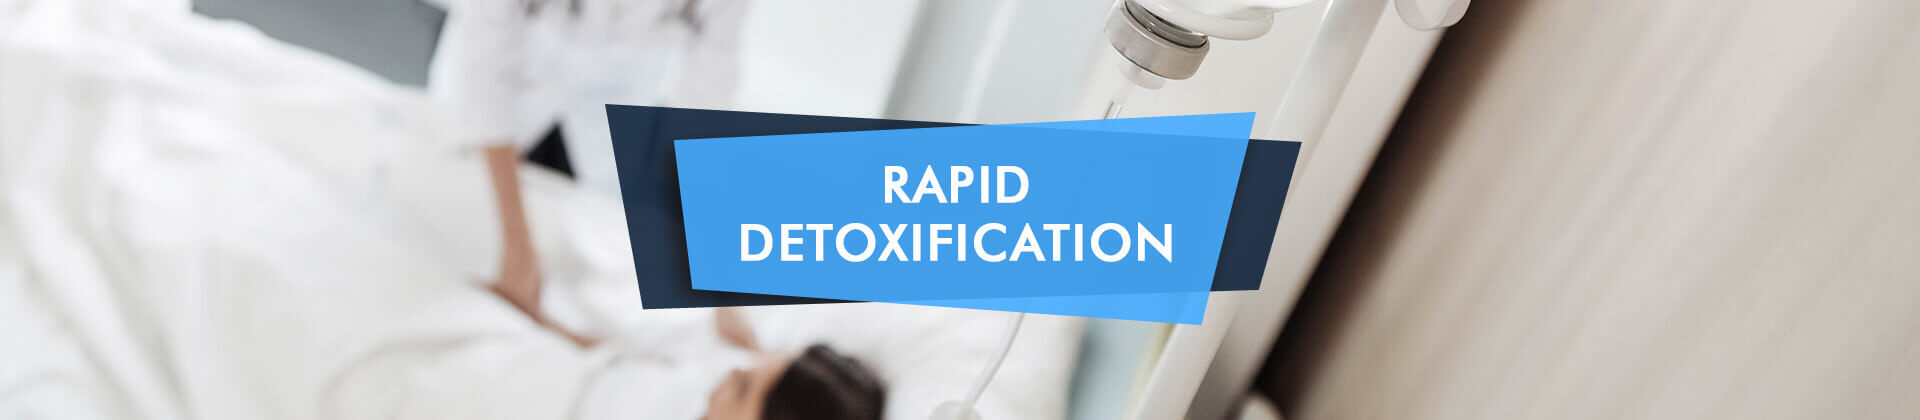 rapid detoxification